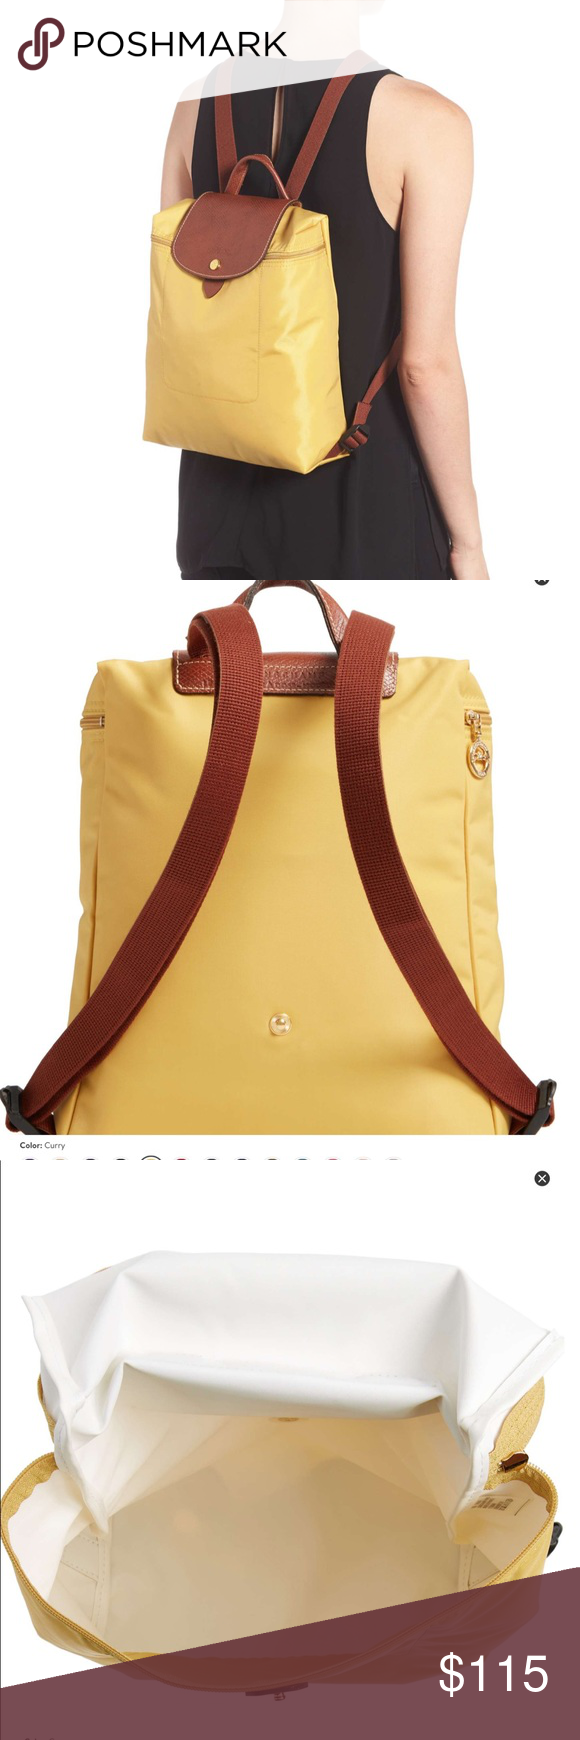 f73d3fd07faa Longchamp le Pliage backpack in curry Cute longchamp le Pliage backpack in  curry color. Brand new from harrods of London! Longchamp Bags Backpacks